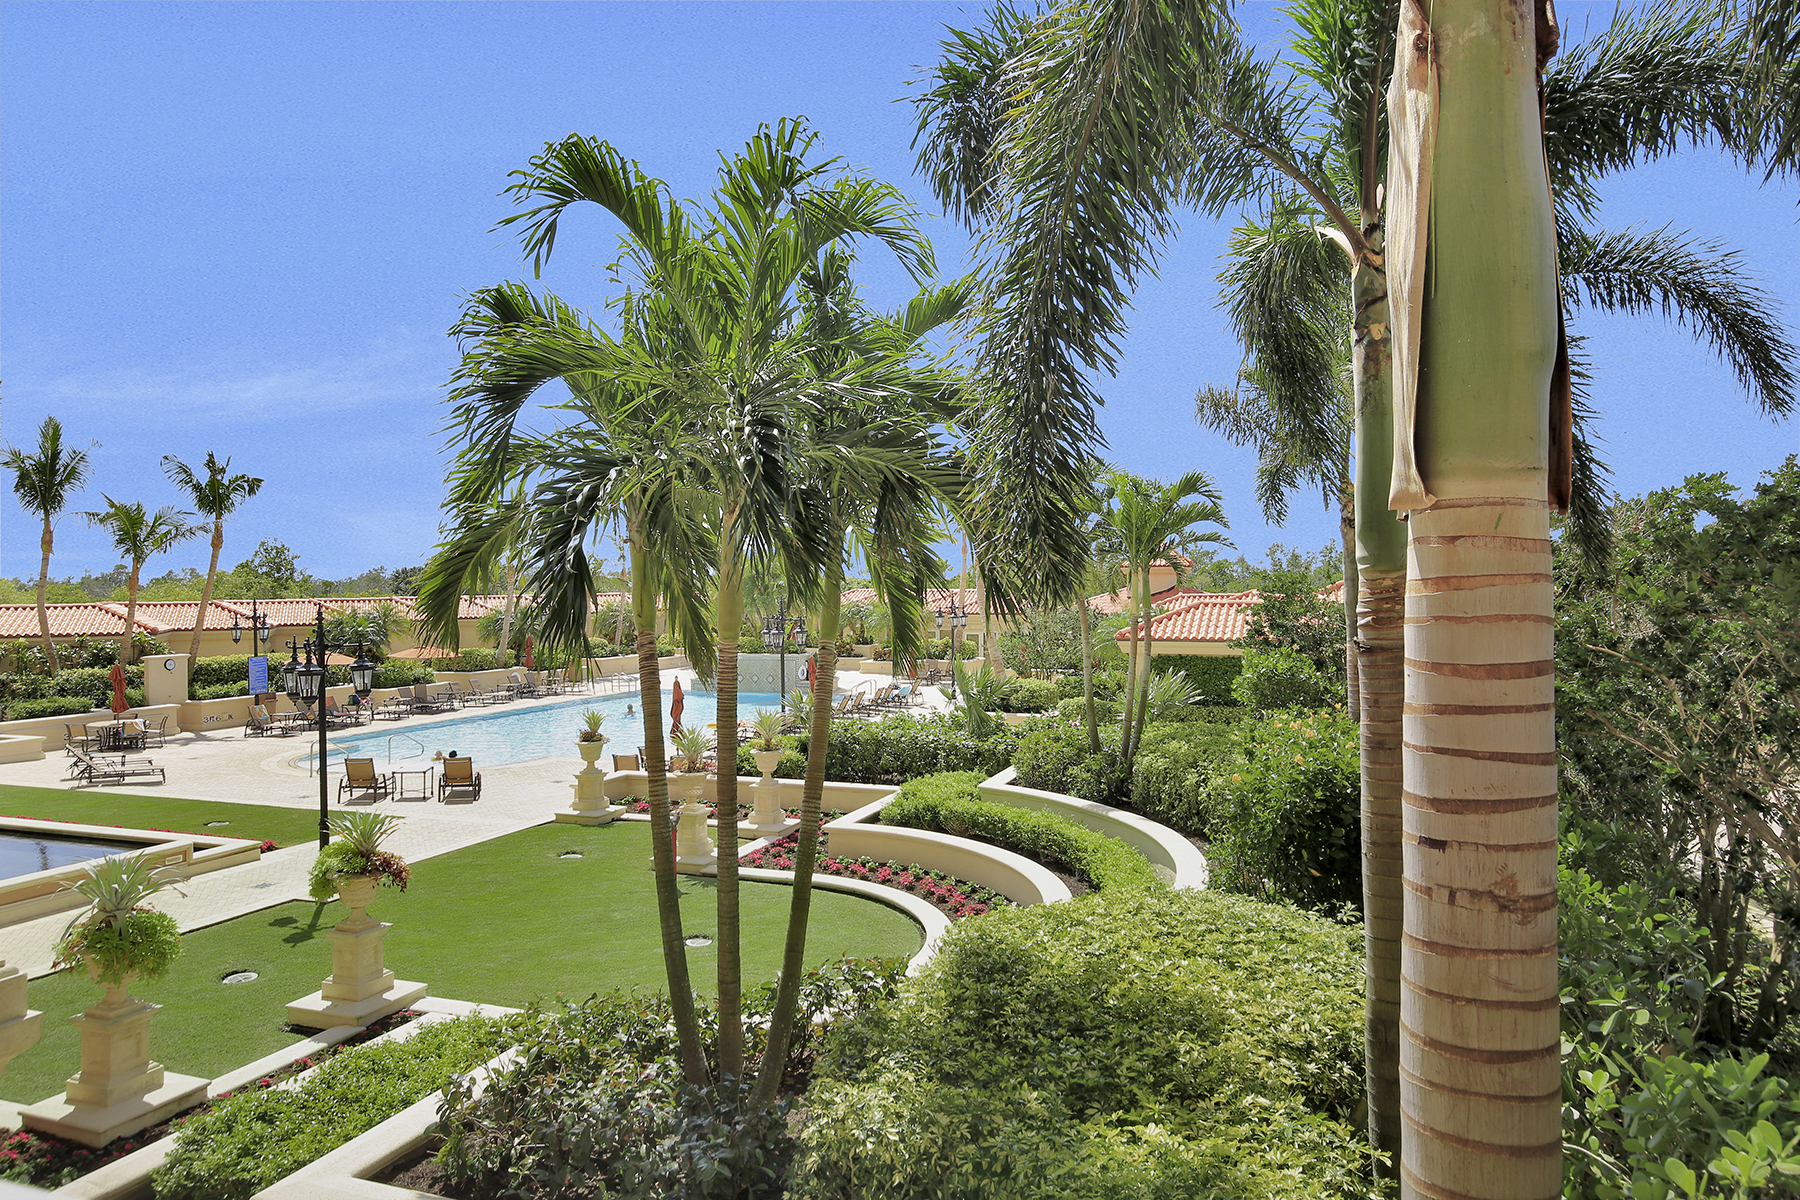 Additional photo for property listing at PELICAN BAY - CAP FERRAT 6597  Nicholas Blvd 305,  Naples, Florida 34108 United States